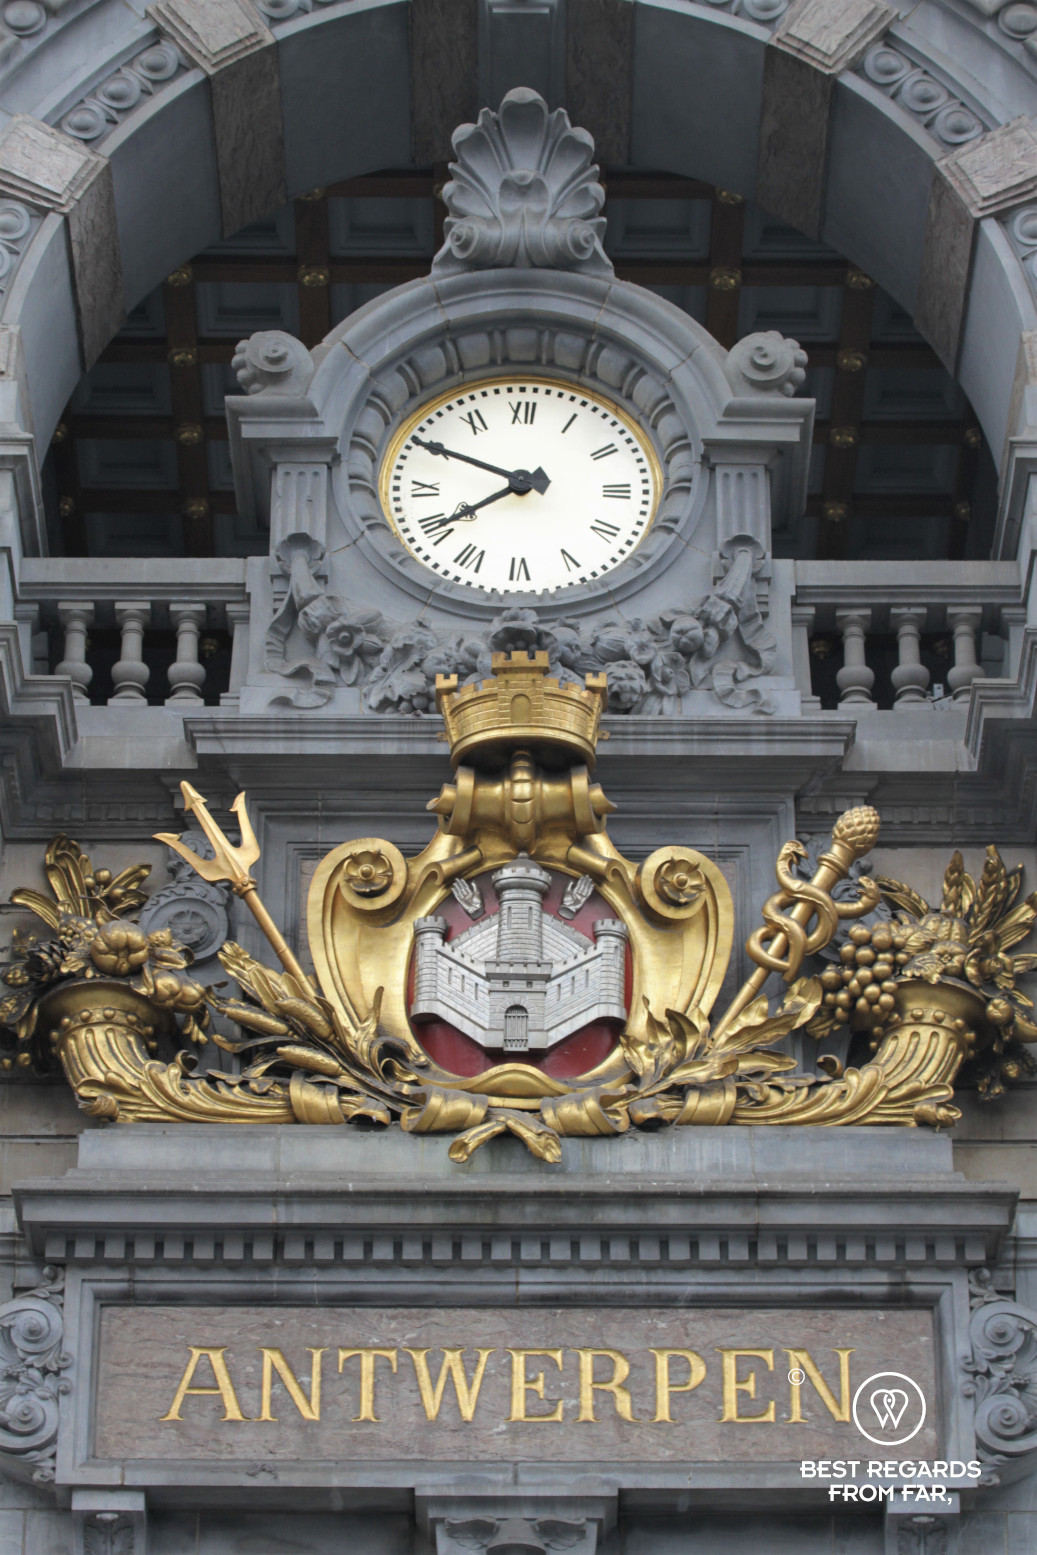 Station clock of Antwerp Central with its guilded weapon underneath